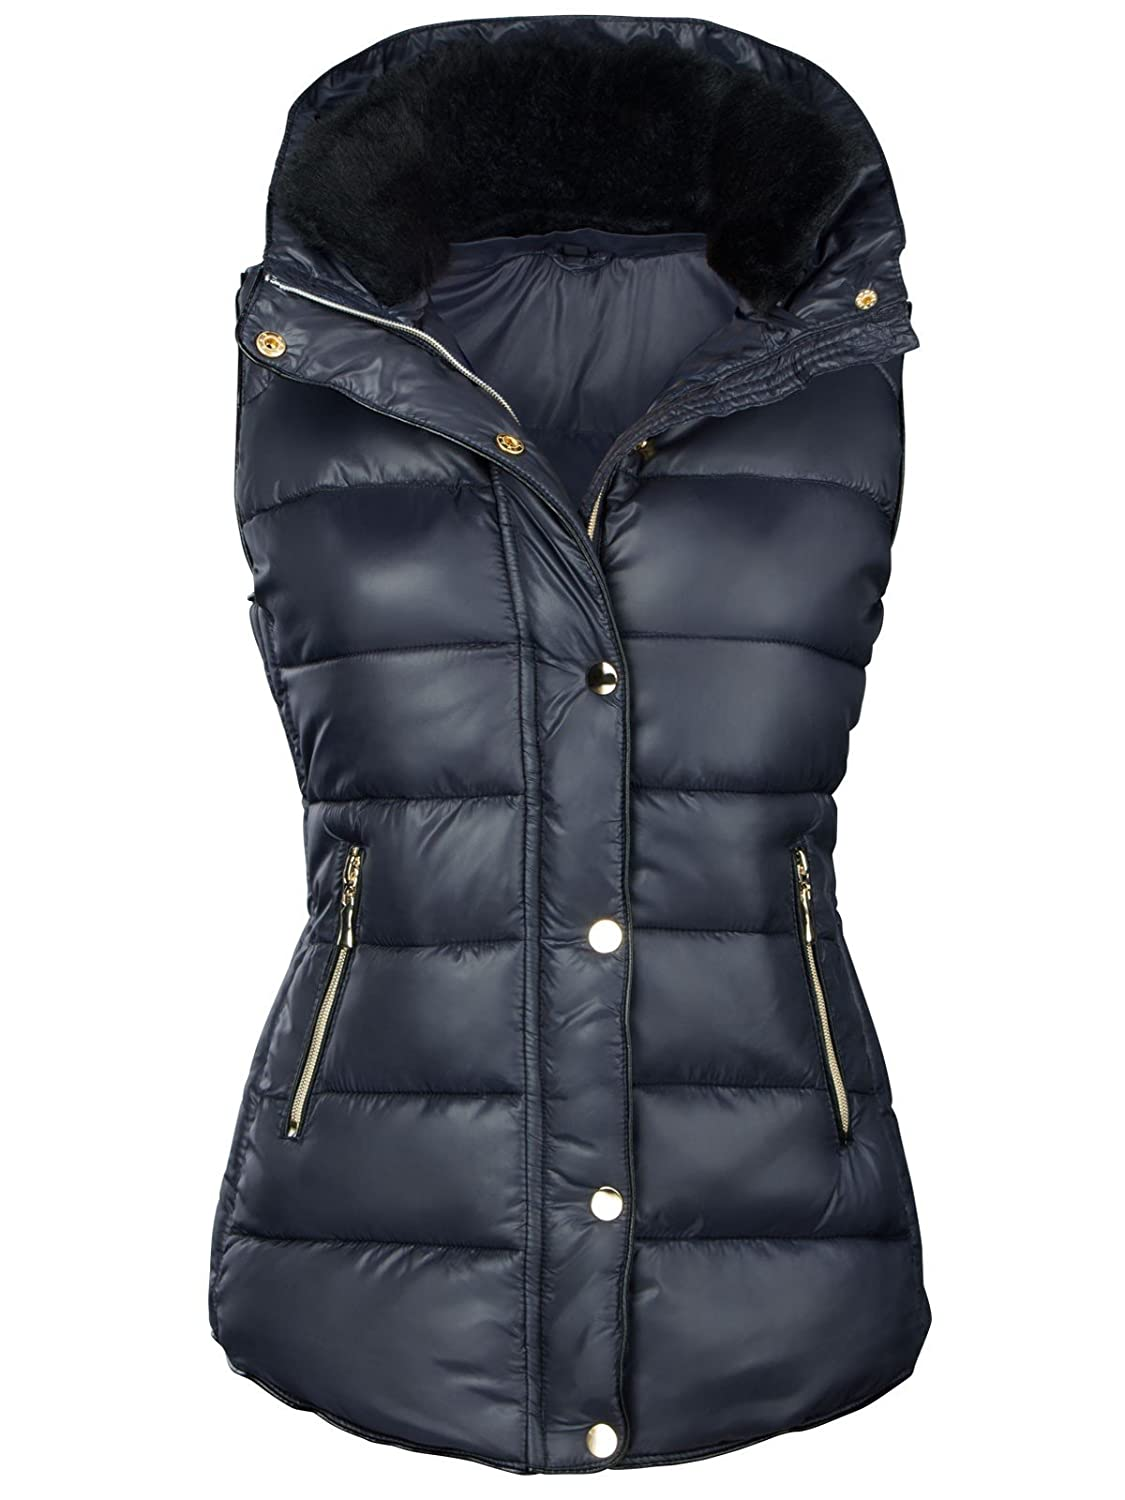 DAMEN WINTER STEPP WESTE DAUNEN LOOK WARM JACKE KAPUZE FELL KRAGEN